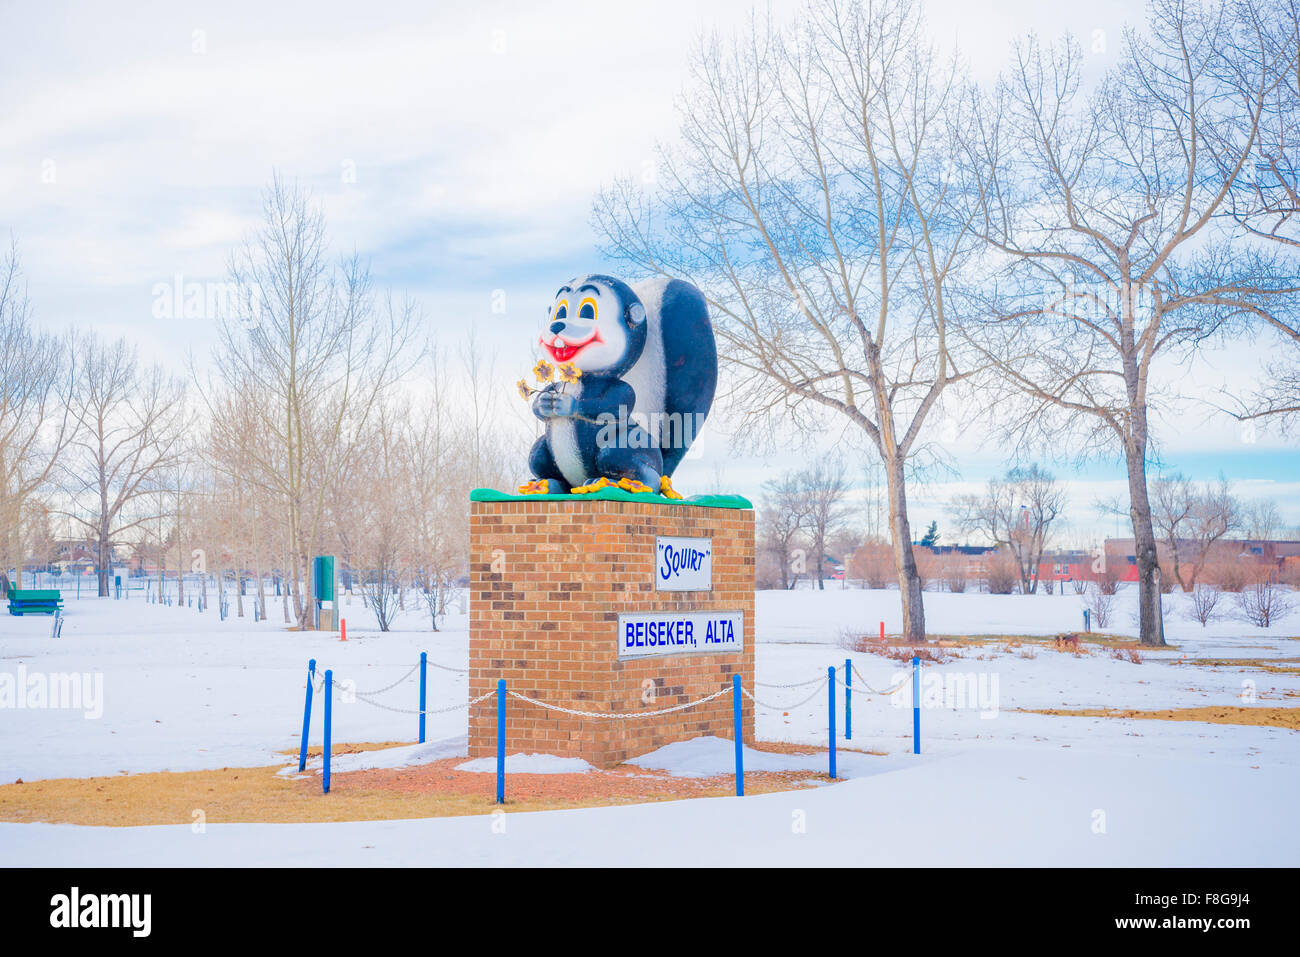 Squirt the Squirell mascot,  Beiseker, Alberta, Canada - Stock Image